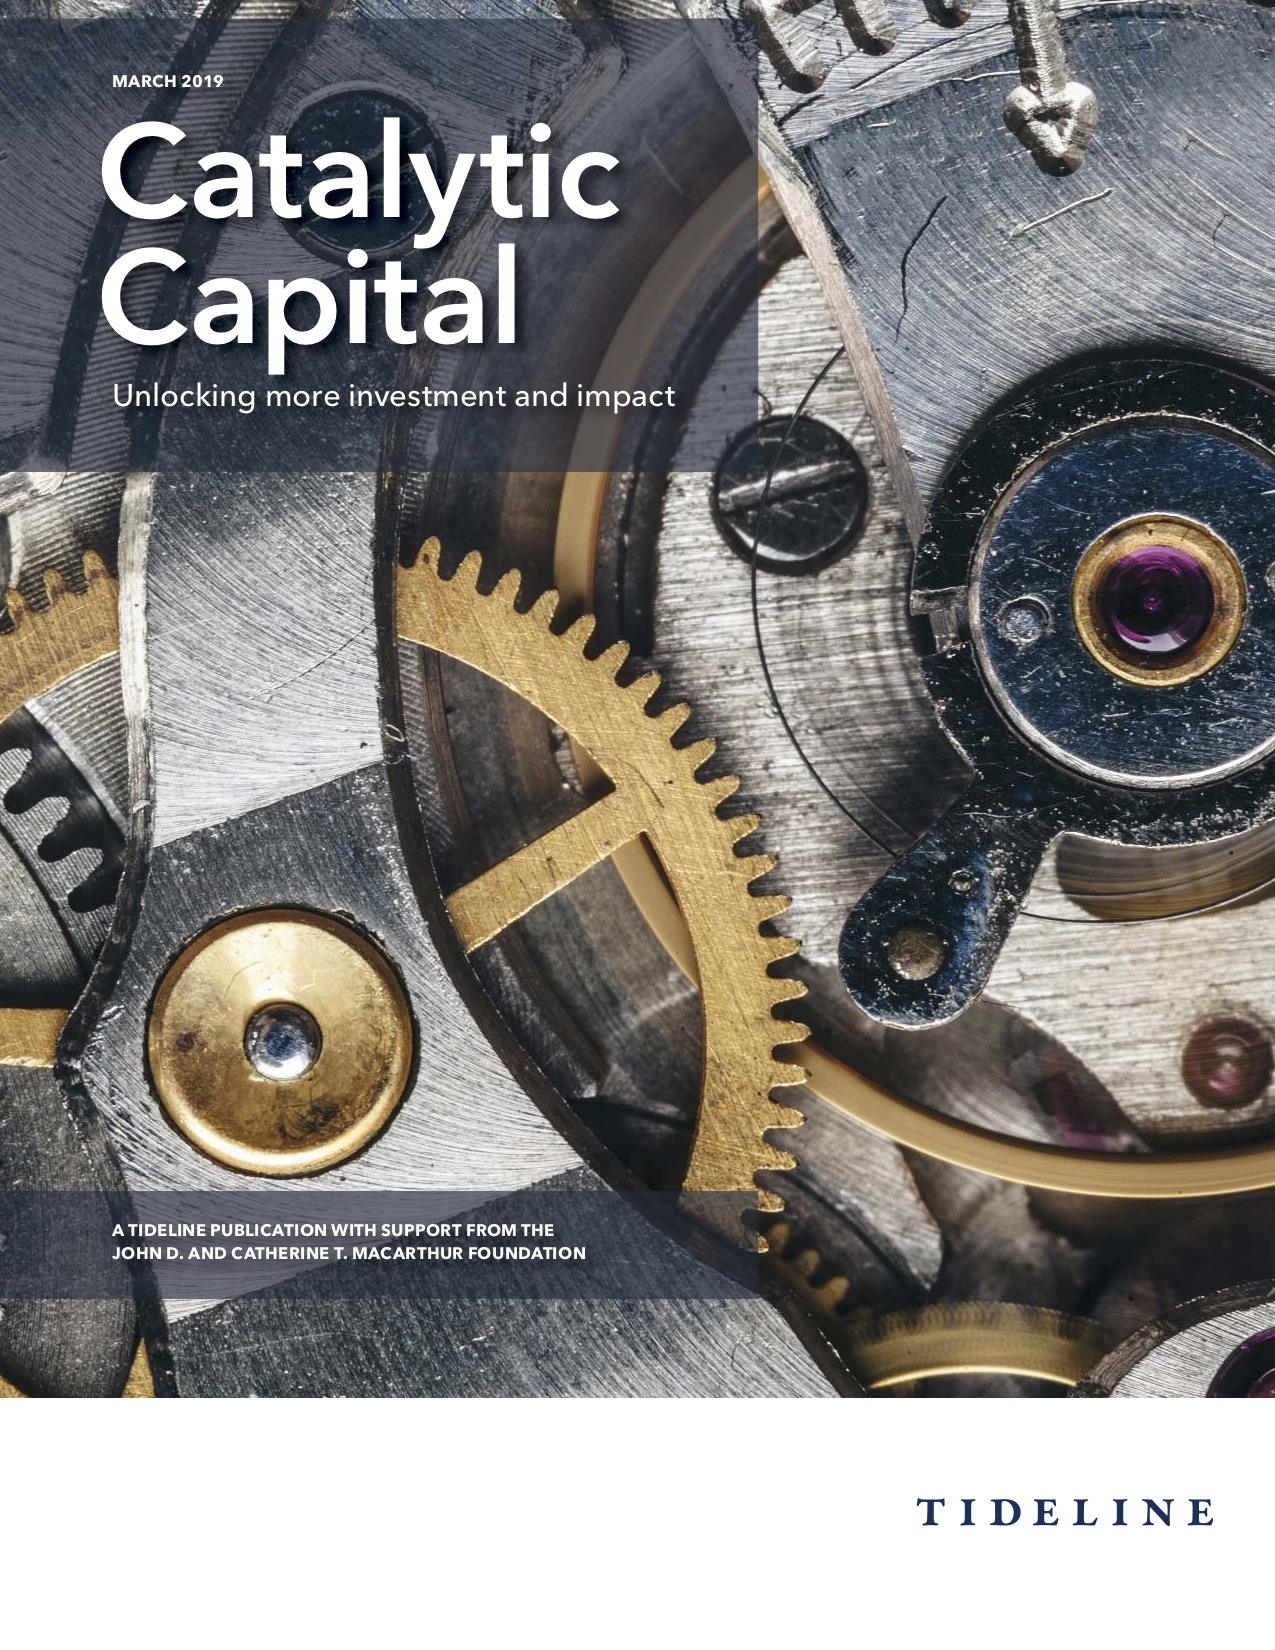 Catalytic Capital – Unlocking more investment and impact